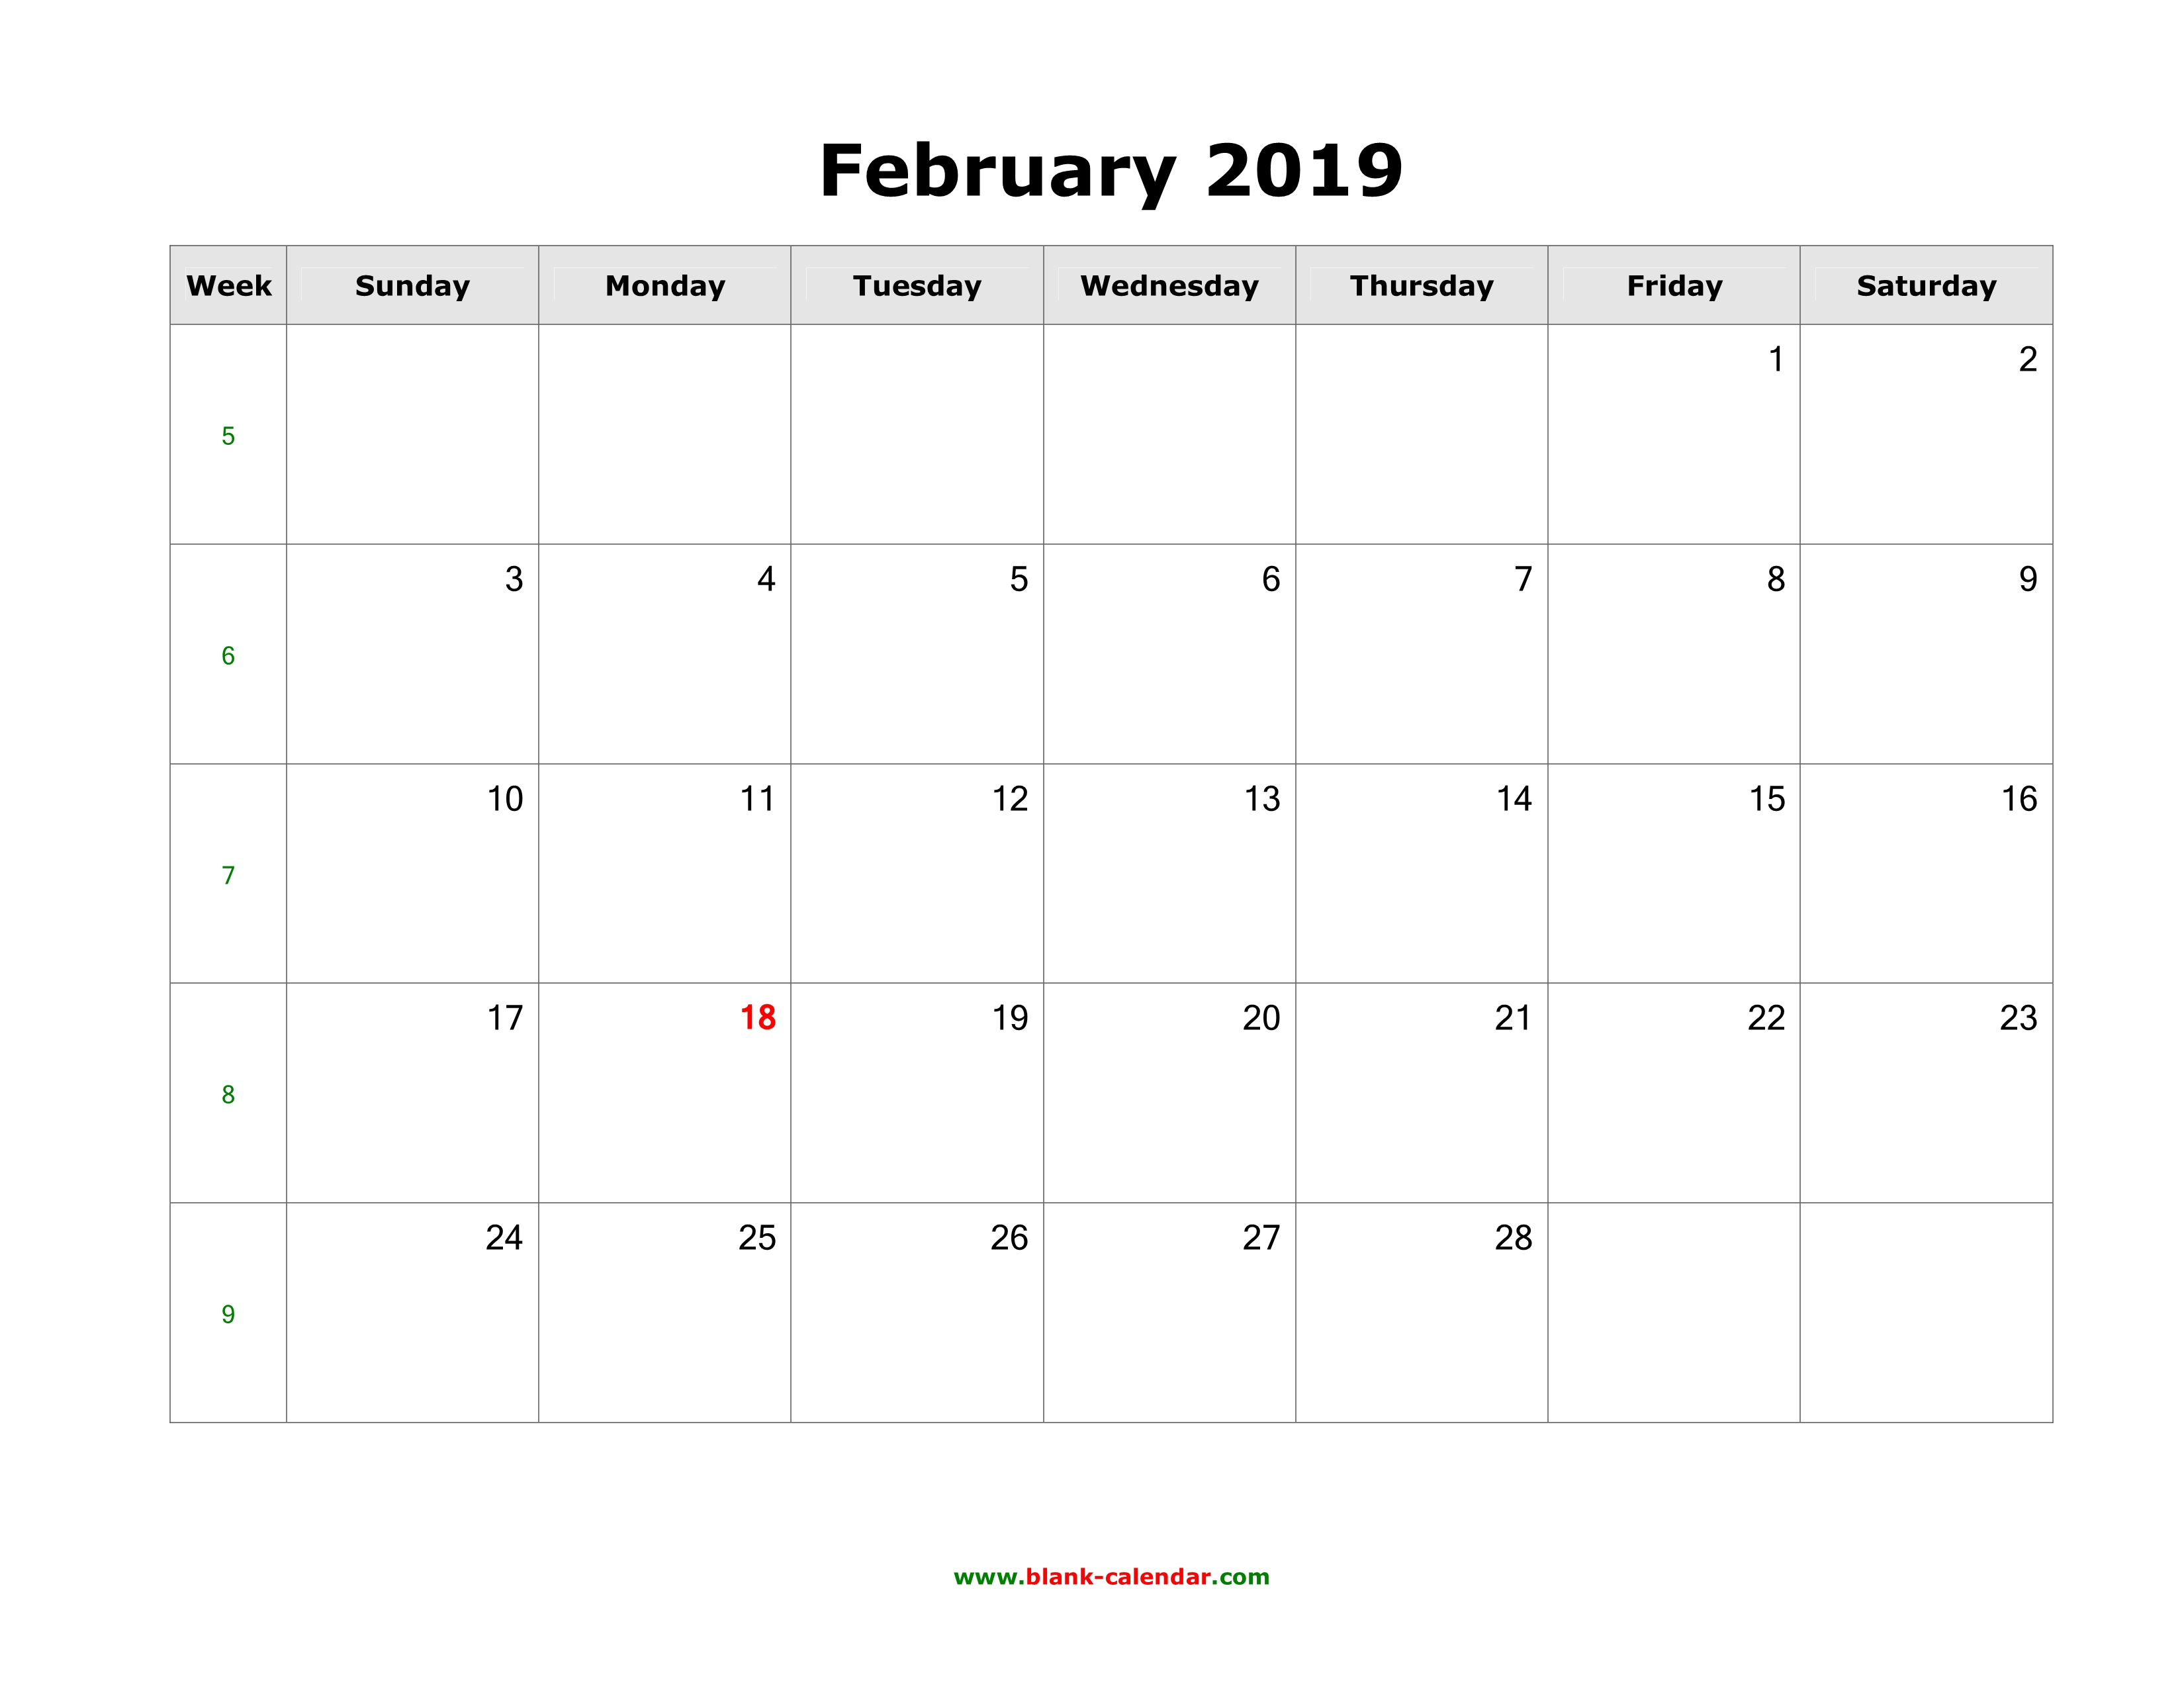 Calendar To Print February 2019 Download February 2019 Blank Calendar (horizontal)